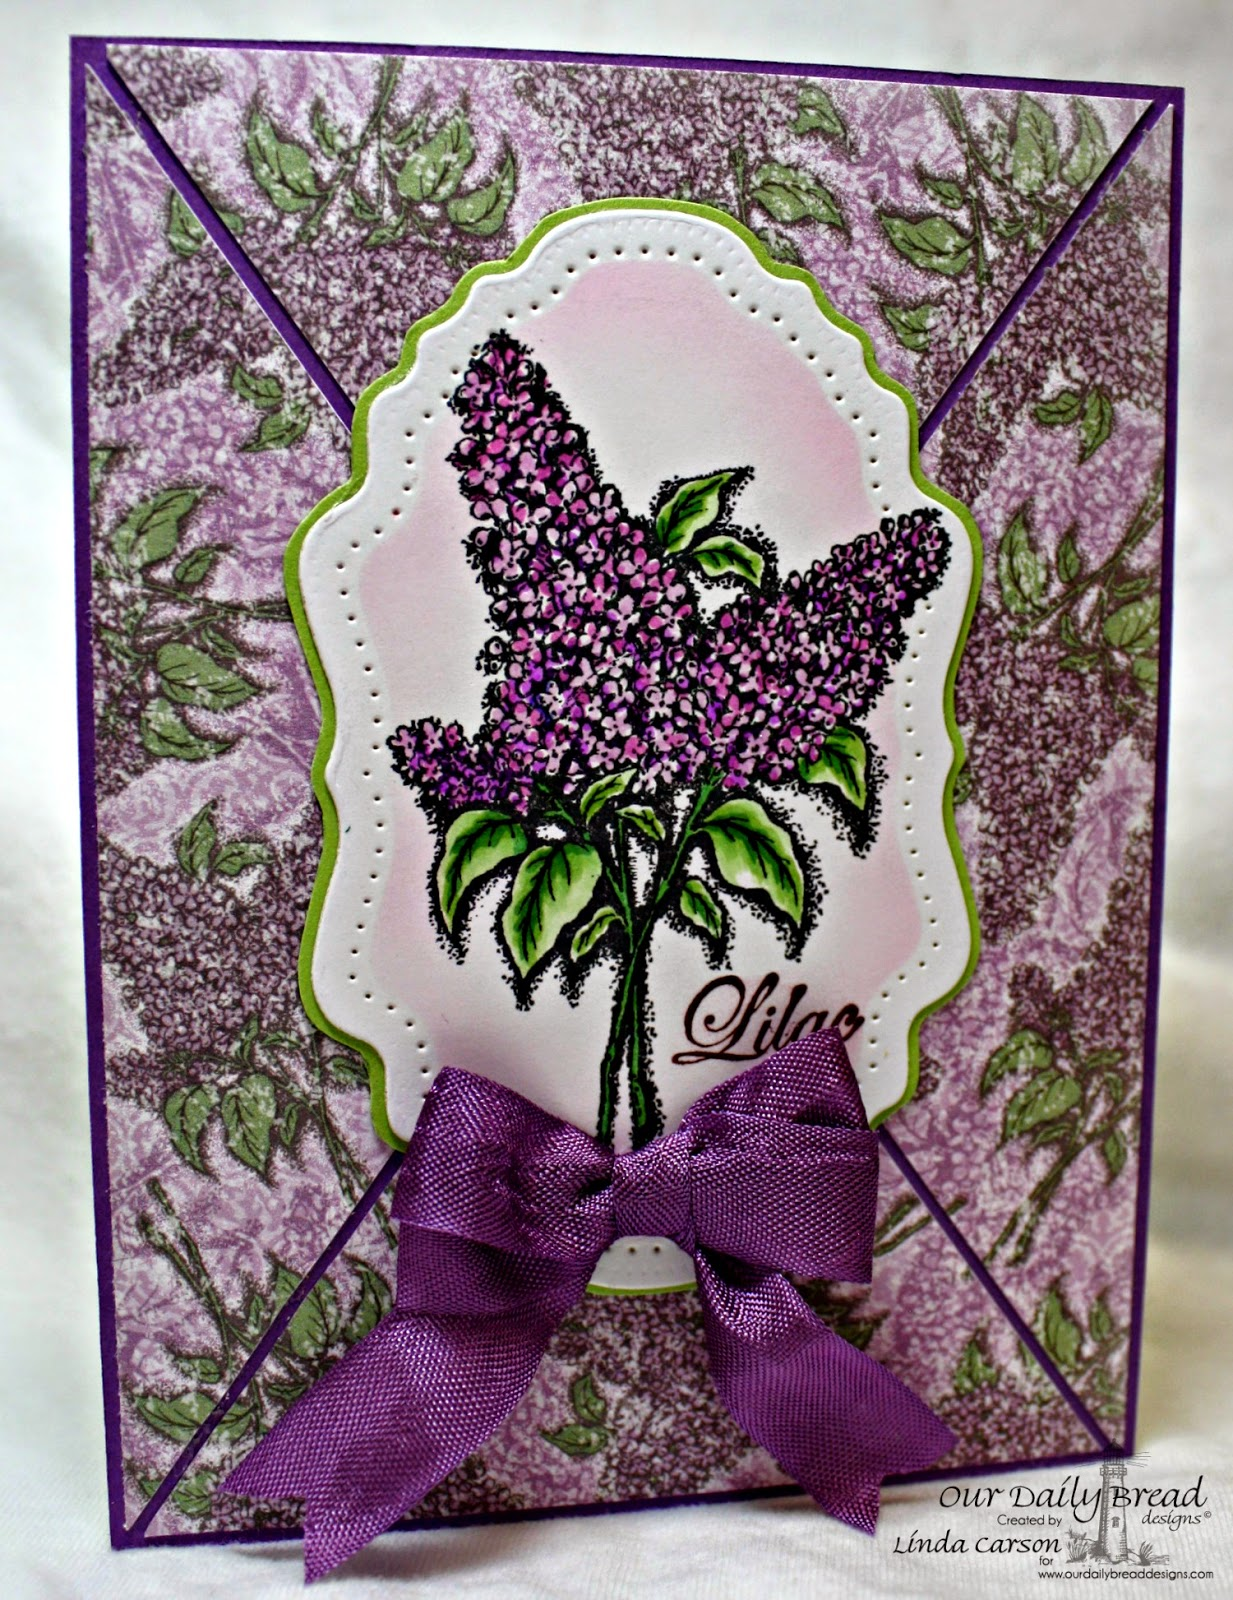 Stamps - Our Daily Bread Designs Lilac, ODBD Custom Vintage Flourish Pattern Die, ODBD Blooming Garden Paper Collection